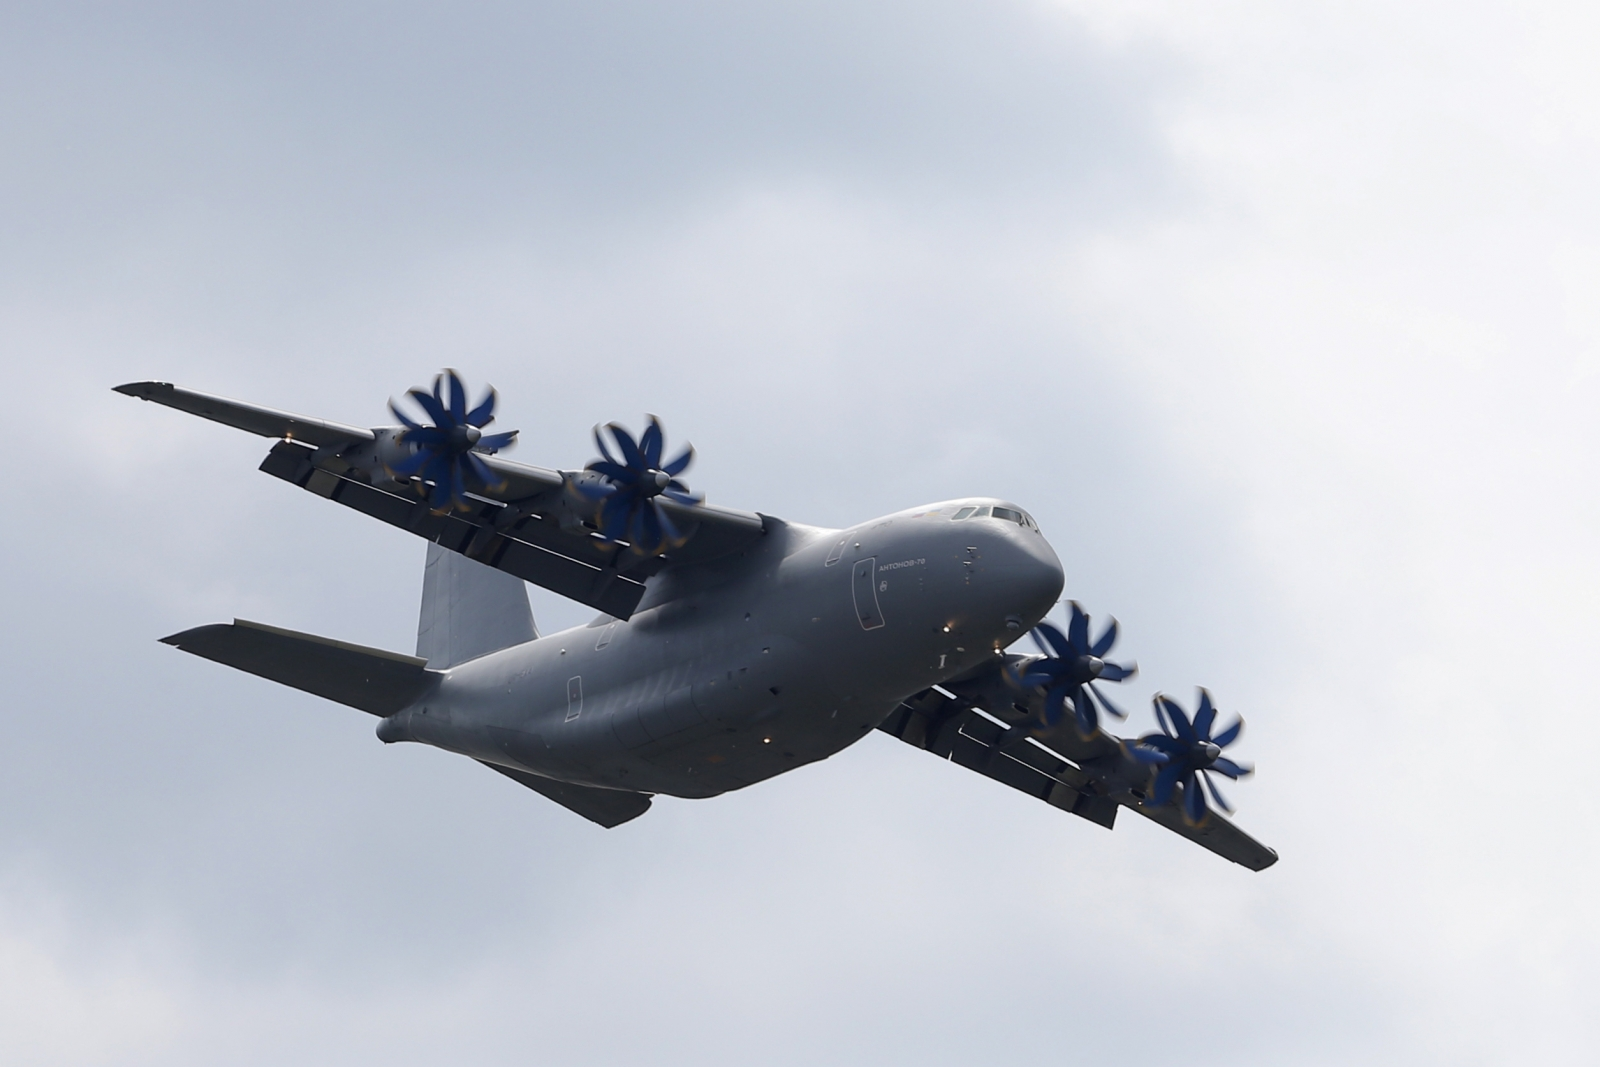 An Antonov An-70 four-engine, military aircraft